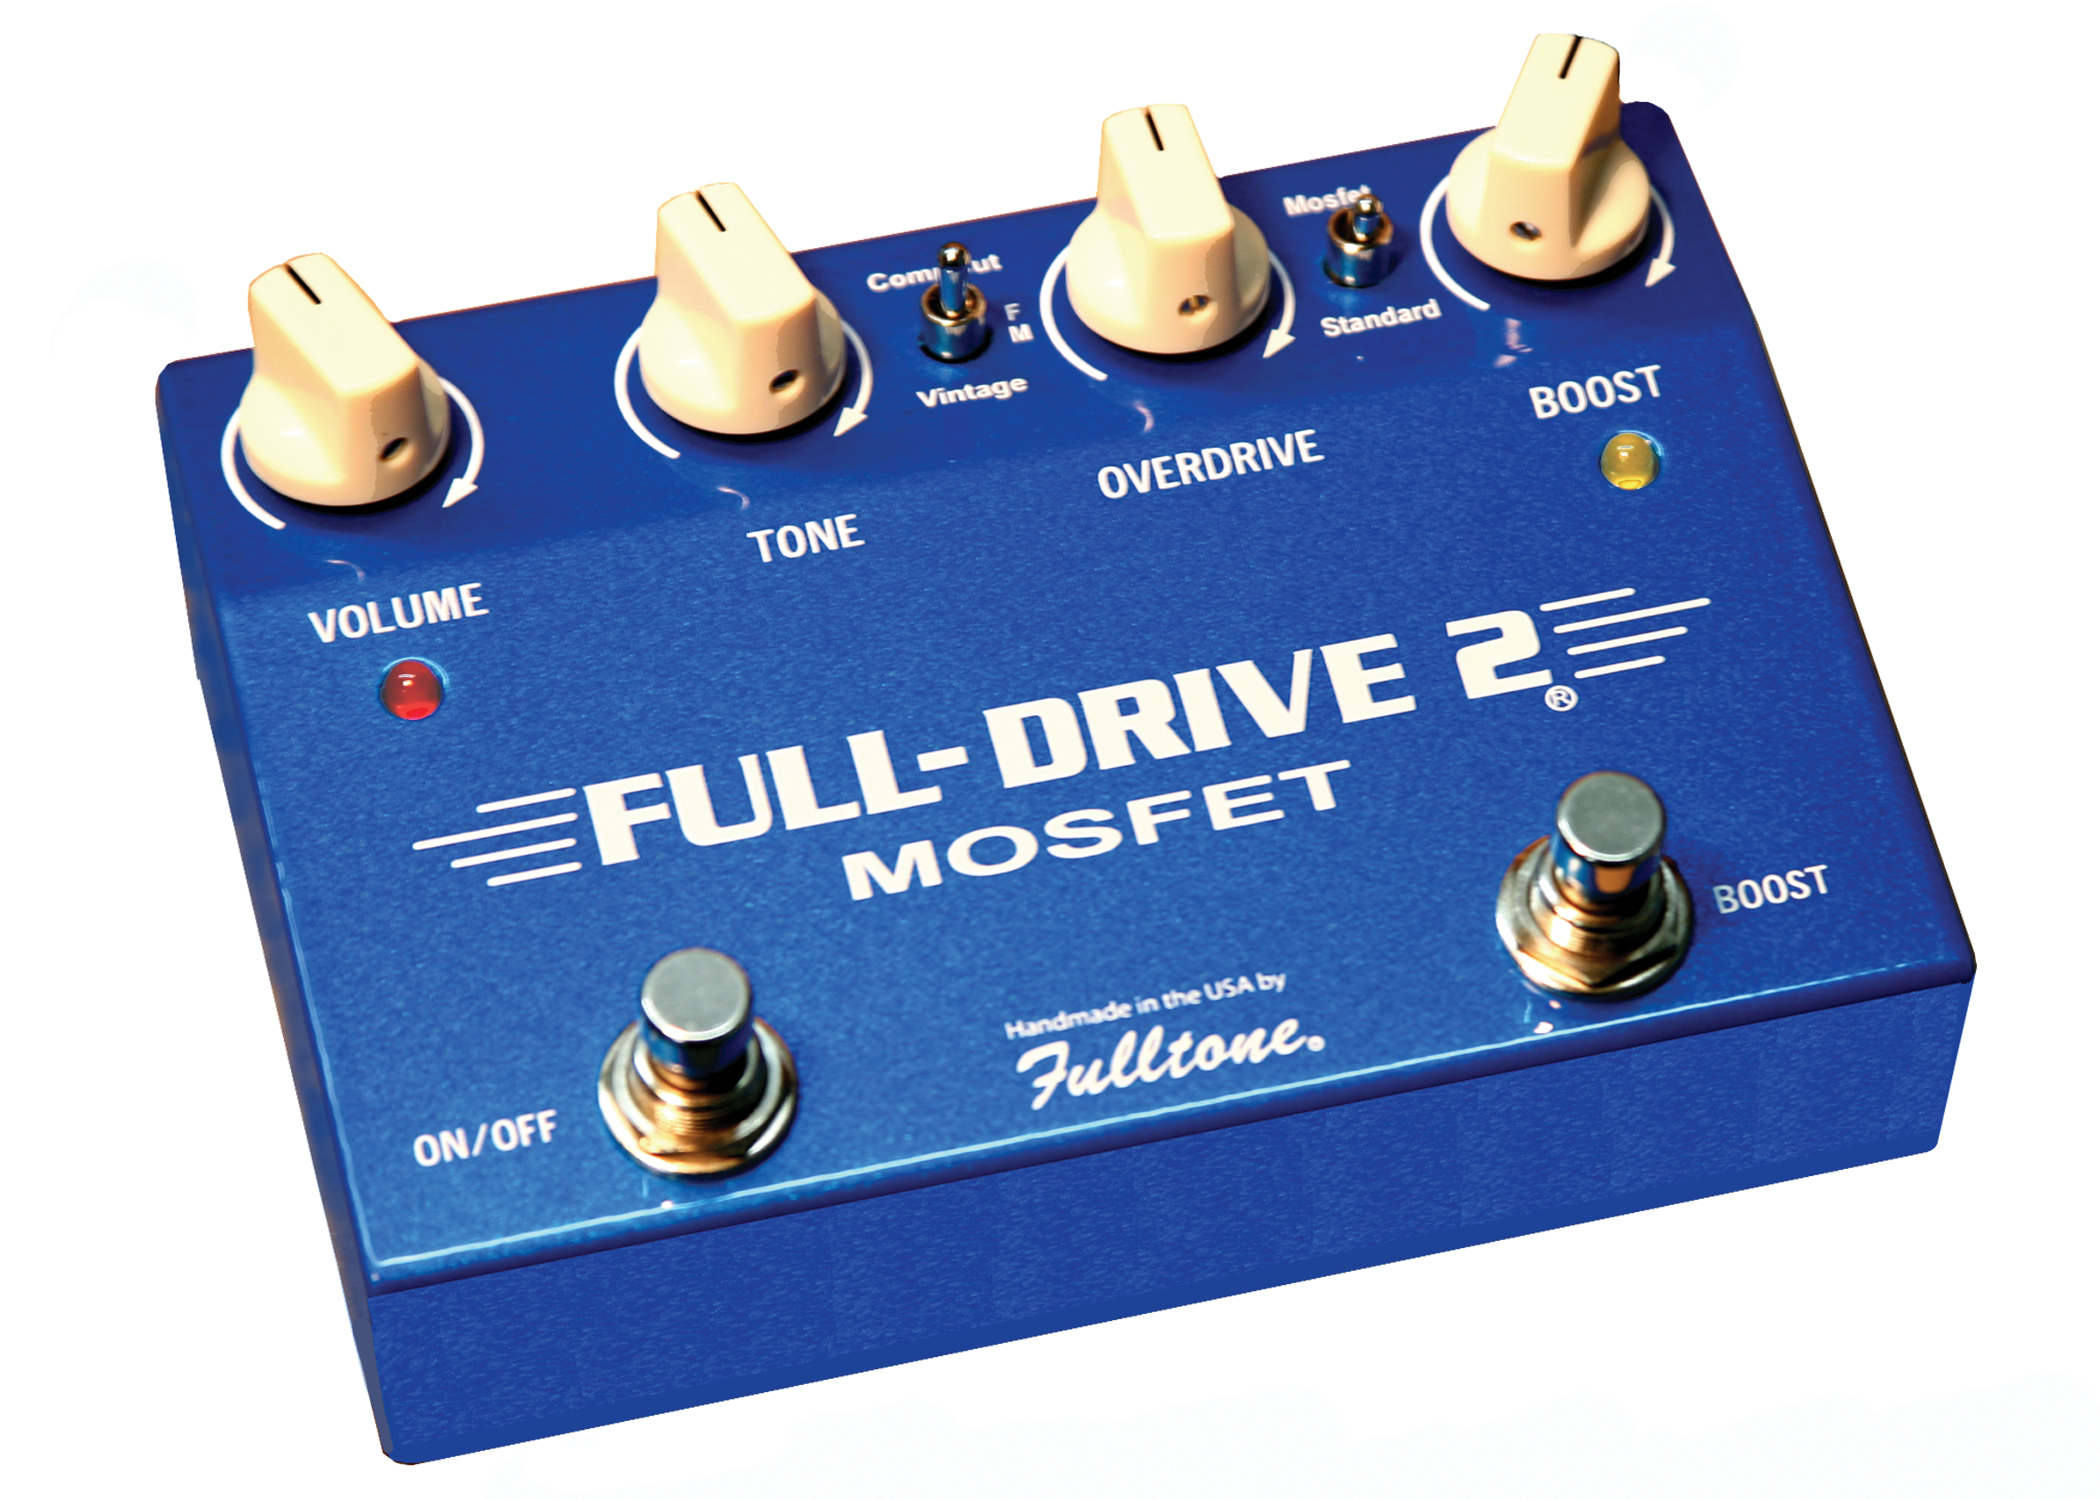 fulltone musical products inc pedals full drive2 mosfet. Black Bedroom Furniture Sets. Home Design Ideas